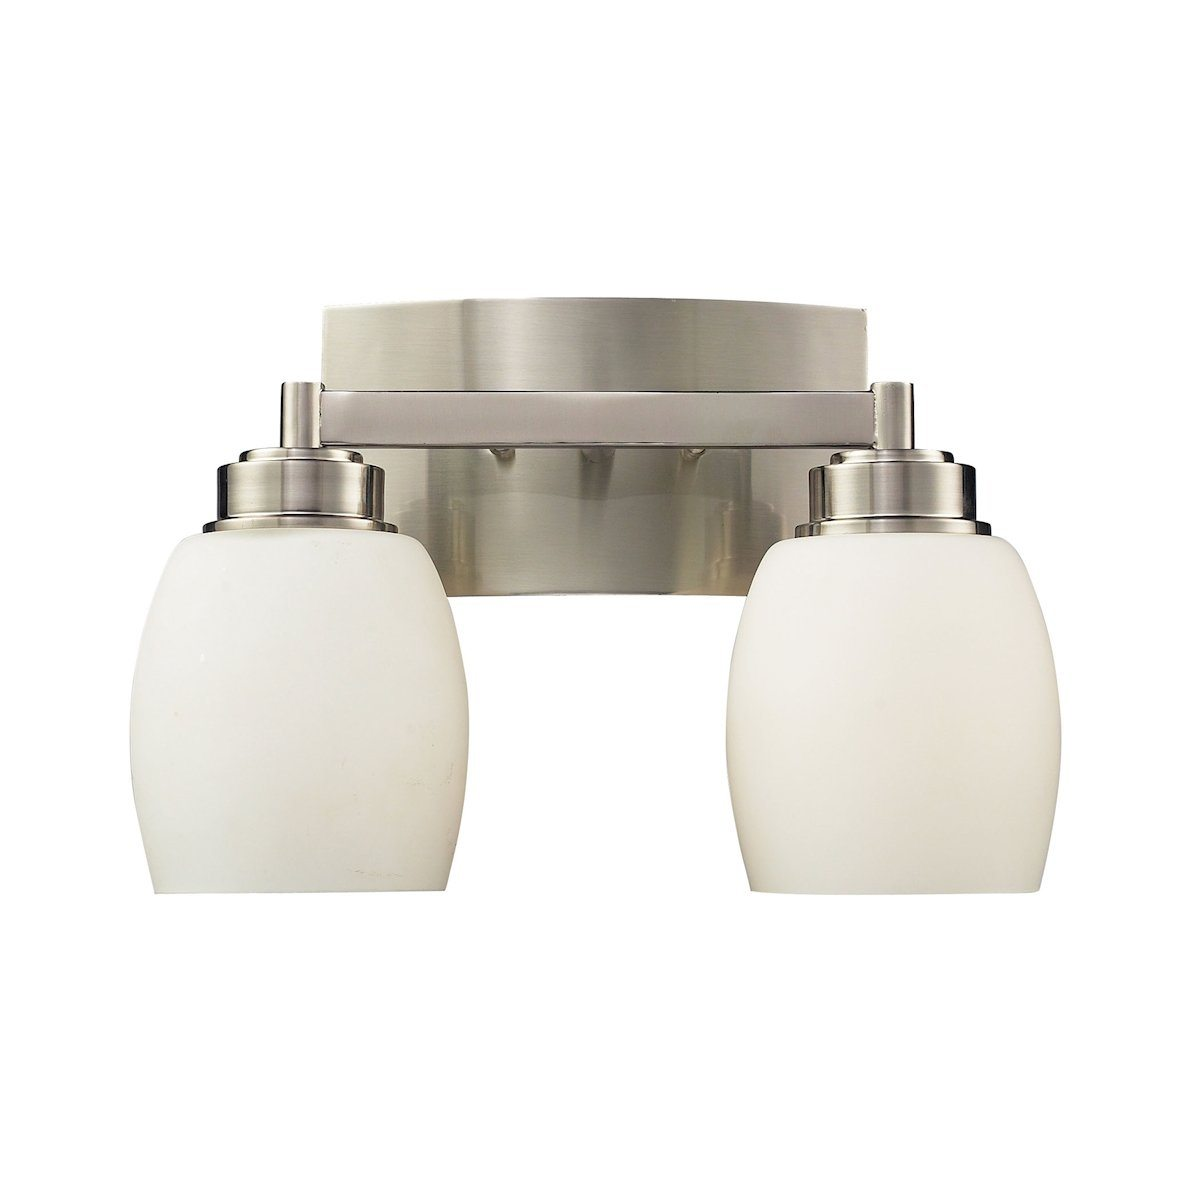 Northport 2 Light Vanity In Satin Nickel And Opal White Glass Wall Elk Lighting